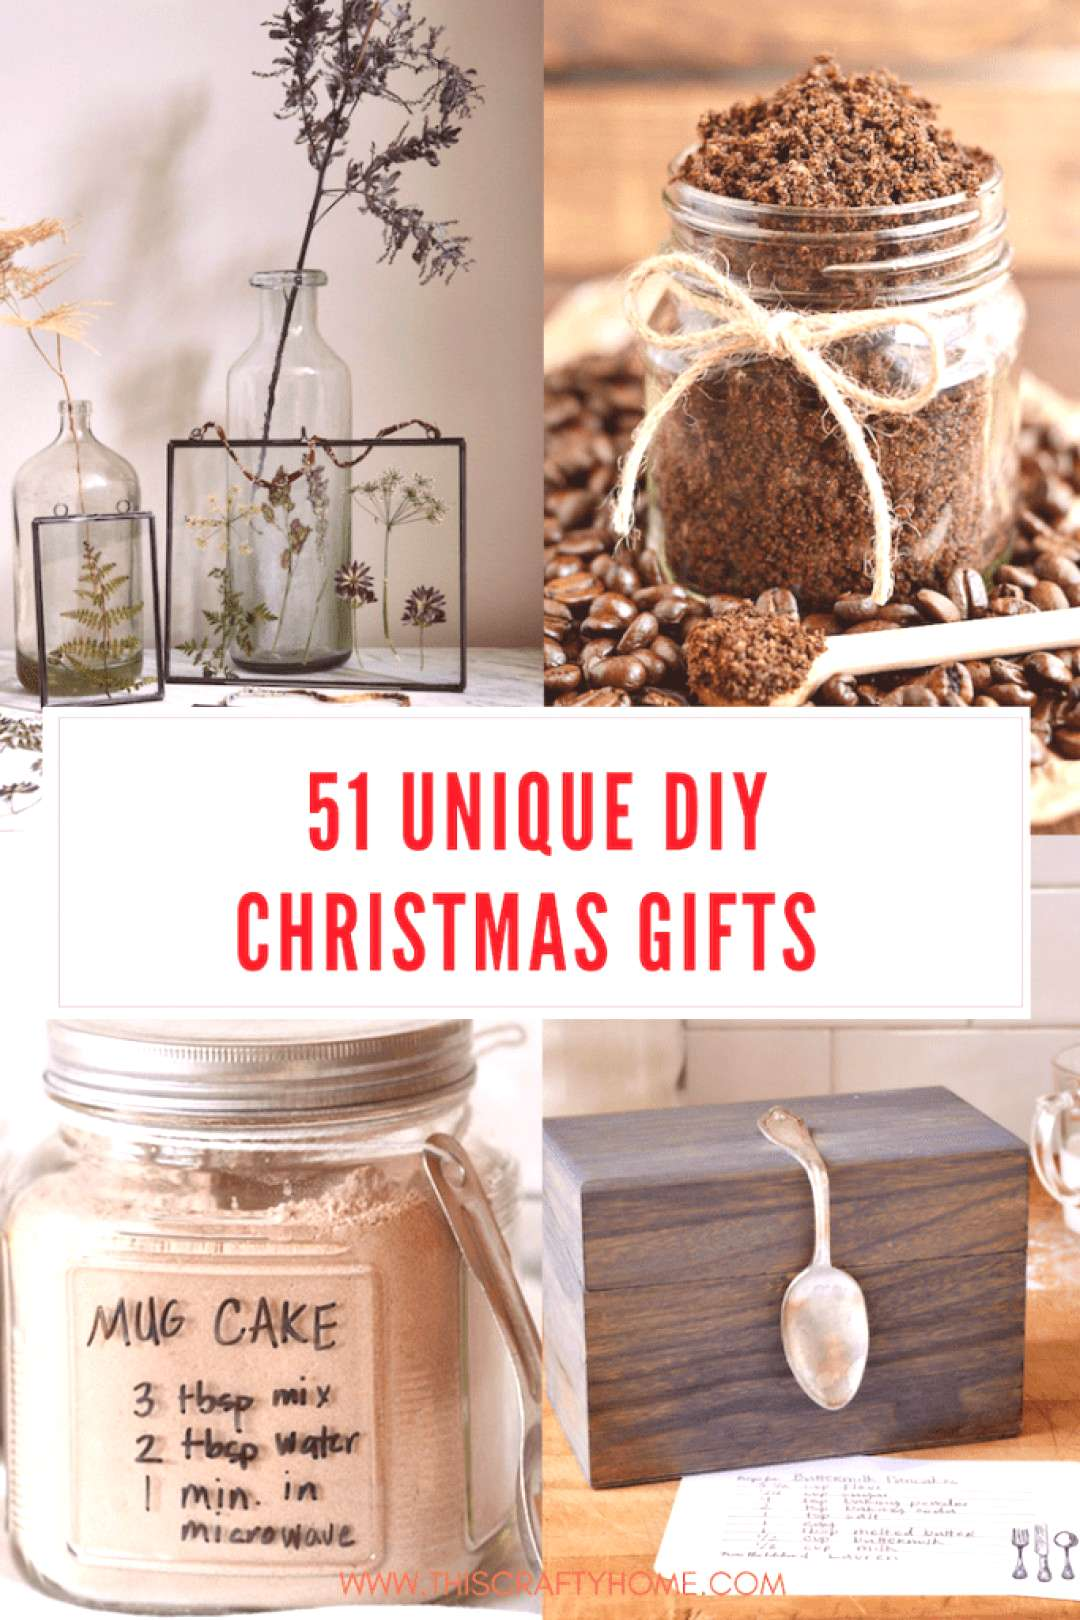 Unique DIY Christmas gifts for all your friends and family! DIY Christmas gifts are a great way to